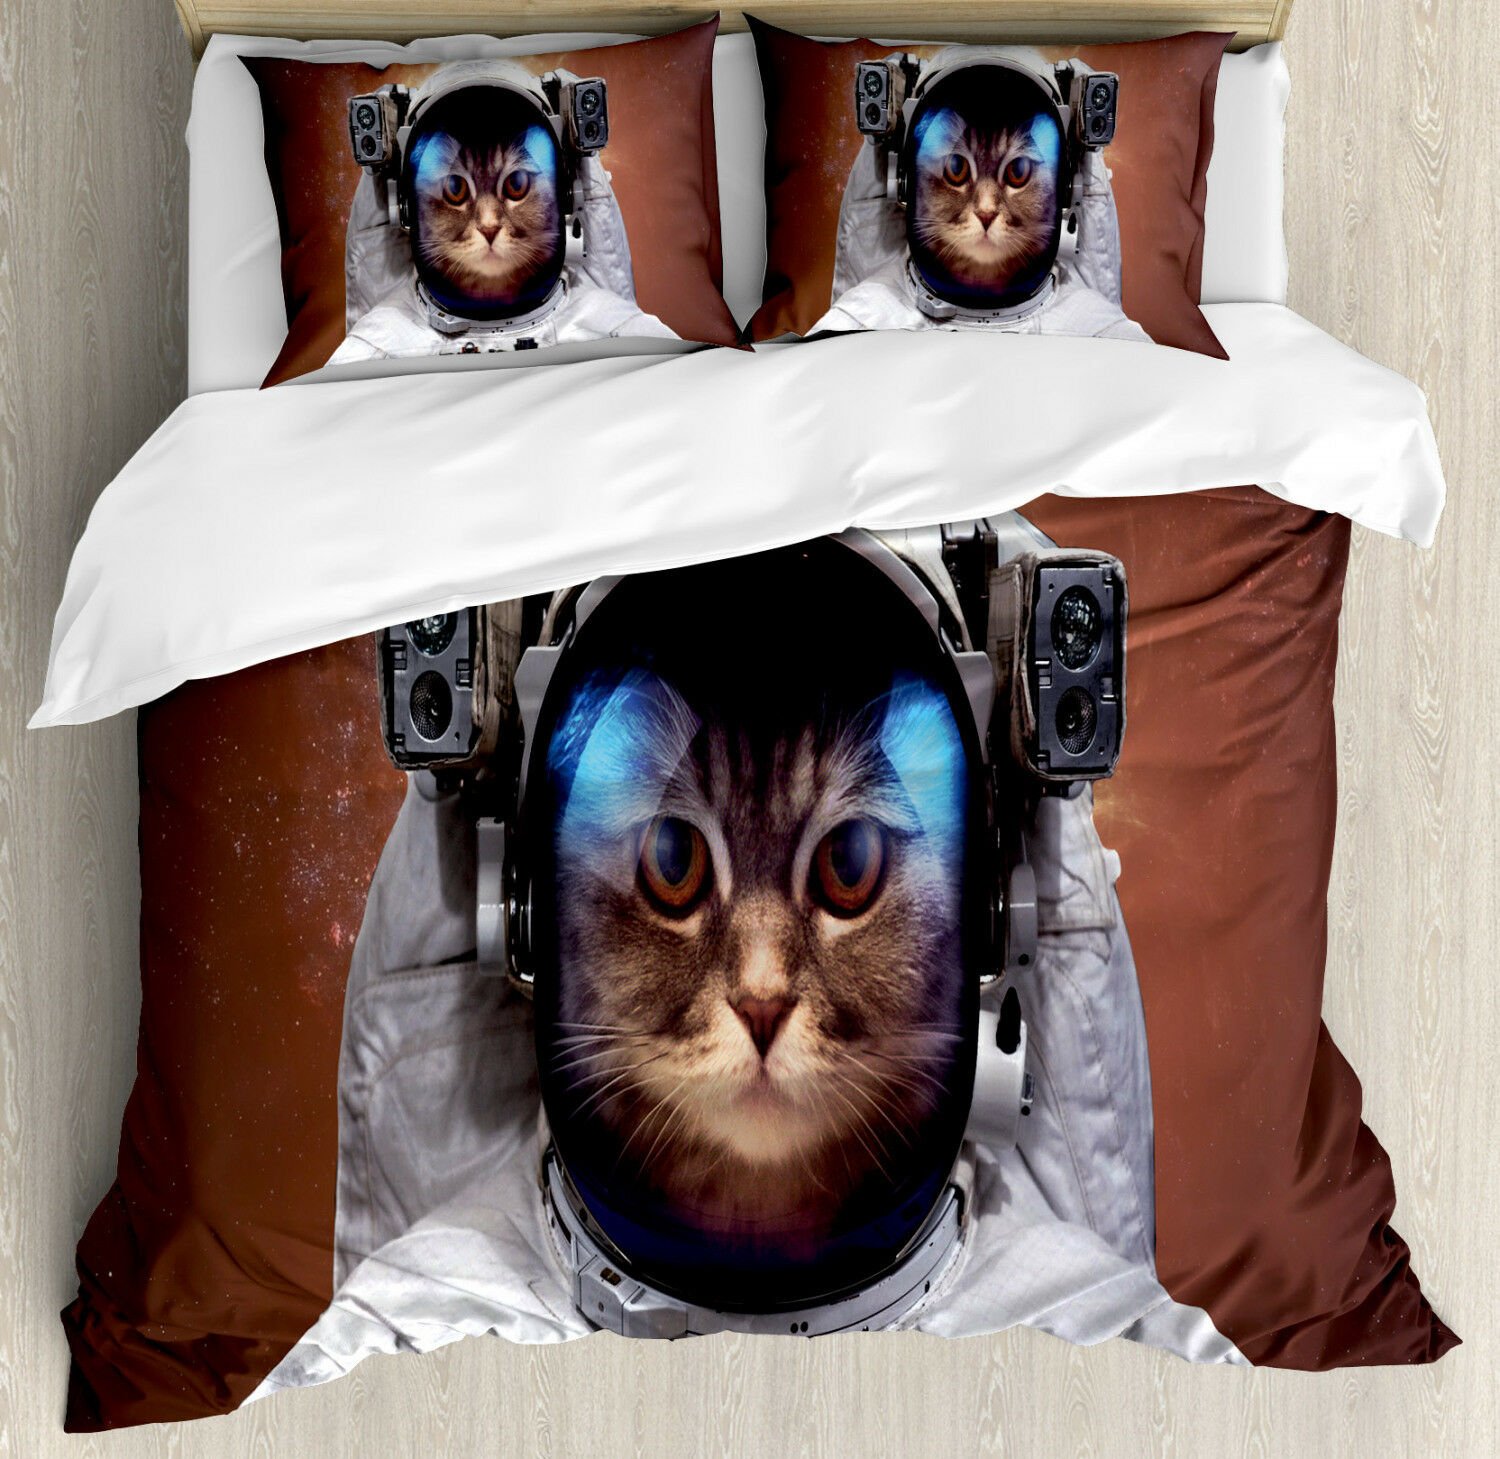 Space Cat Duvet Cover Set with Pillow Shams Kitten in Milkyway Print